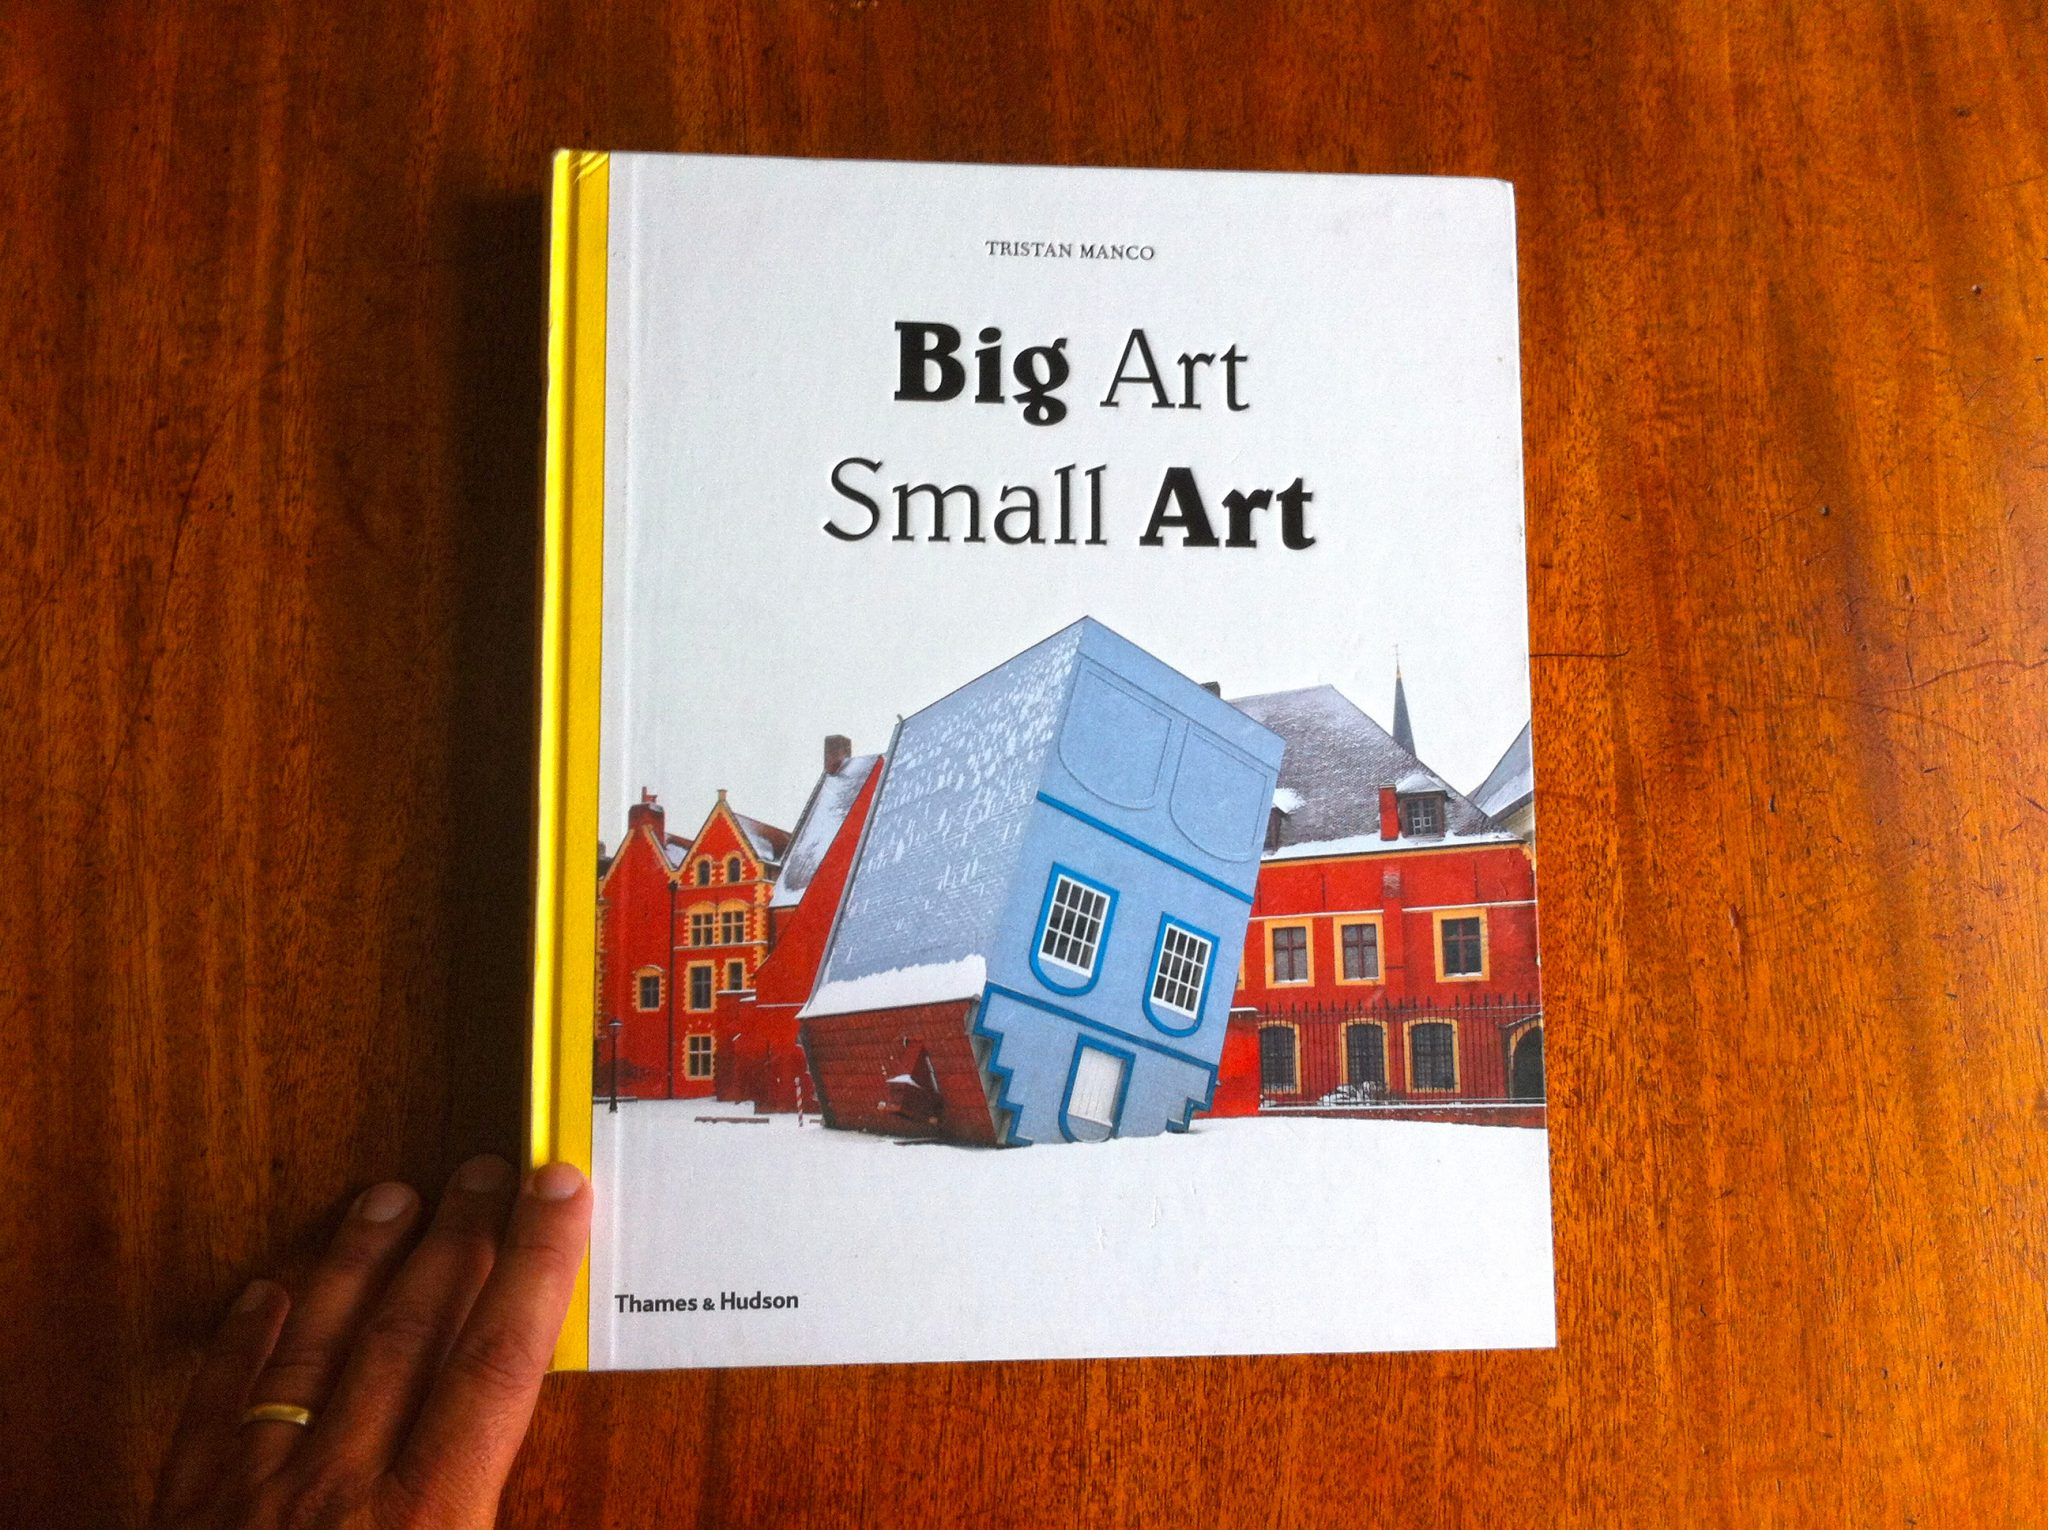 Big Art / Small Art, 2014